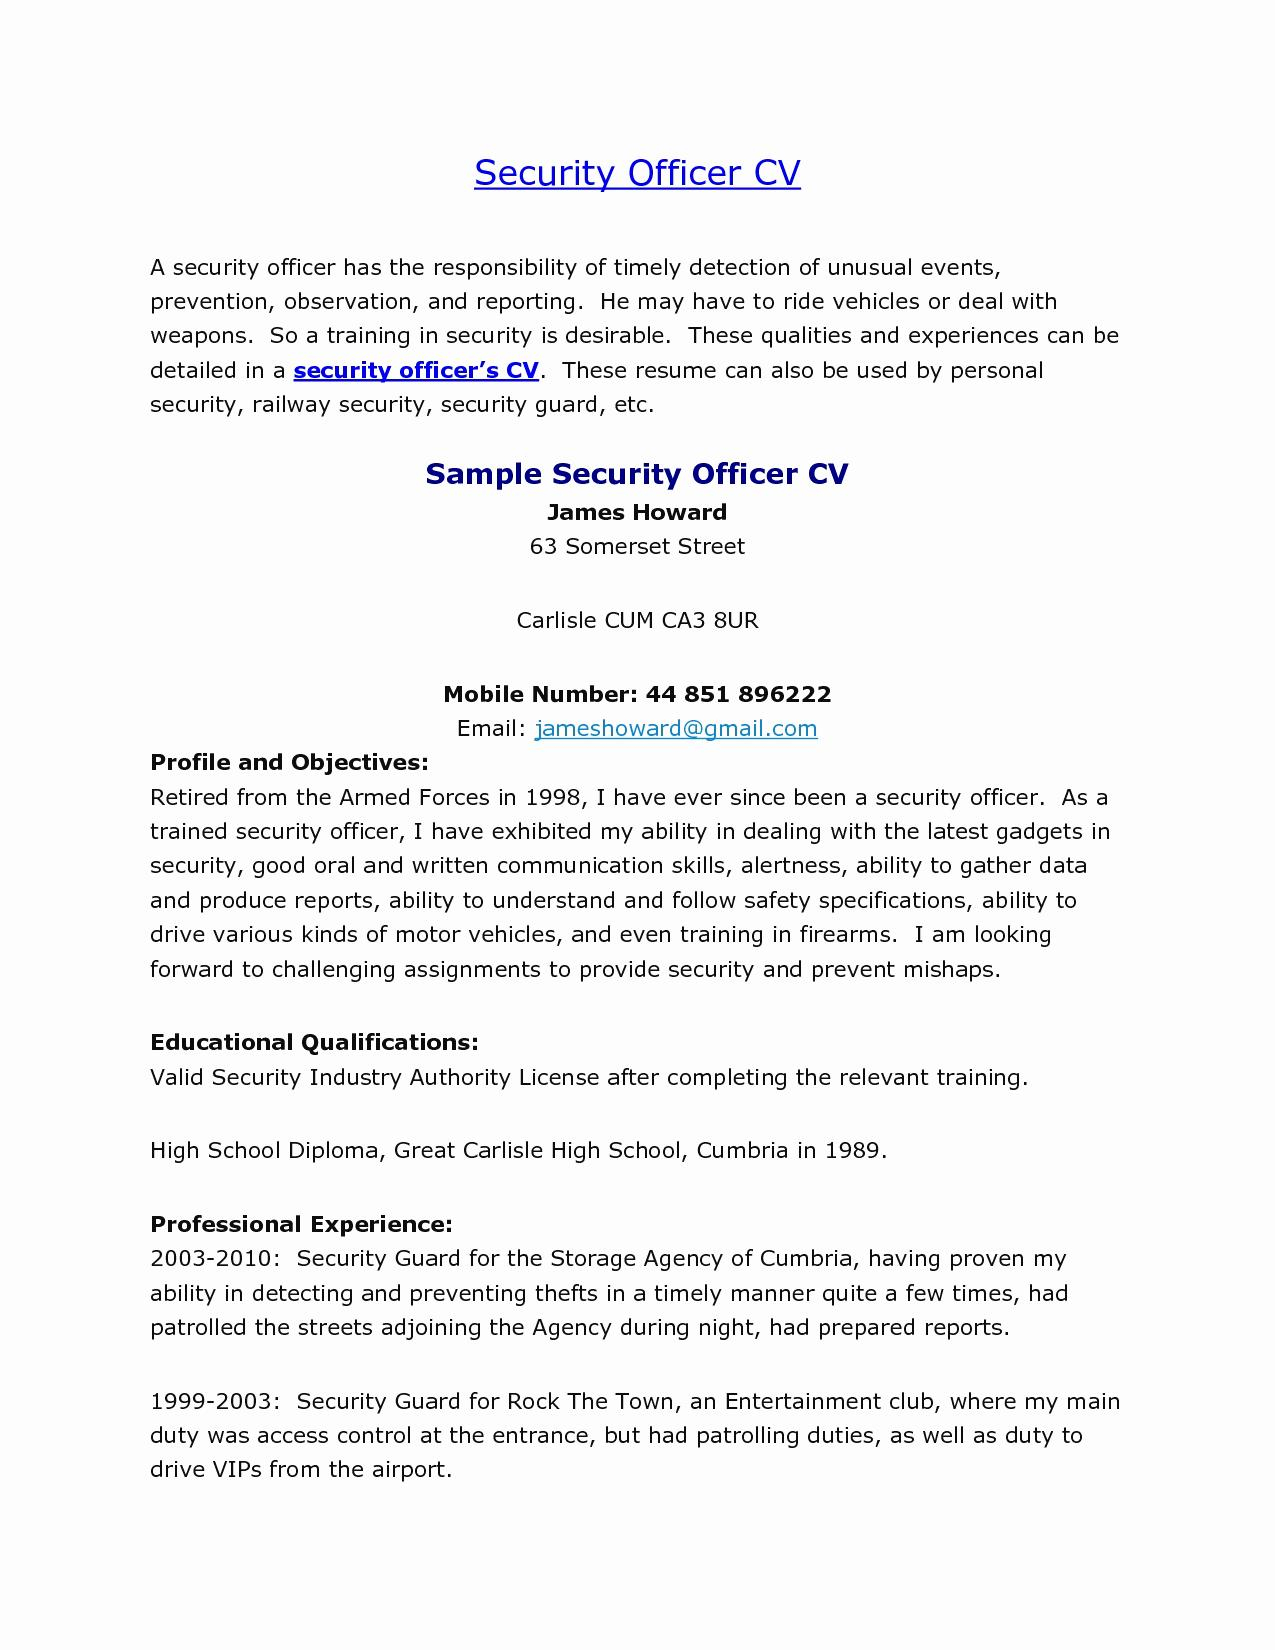 Security Guard Resume - Sample Resume for Overnight Stocker Luxury Security Guard Resume